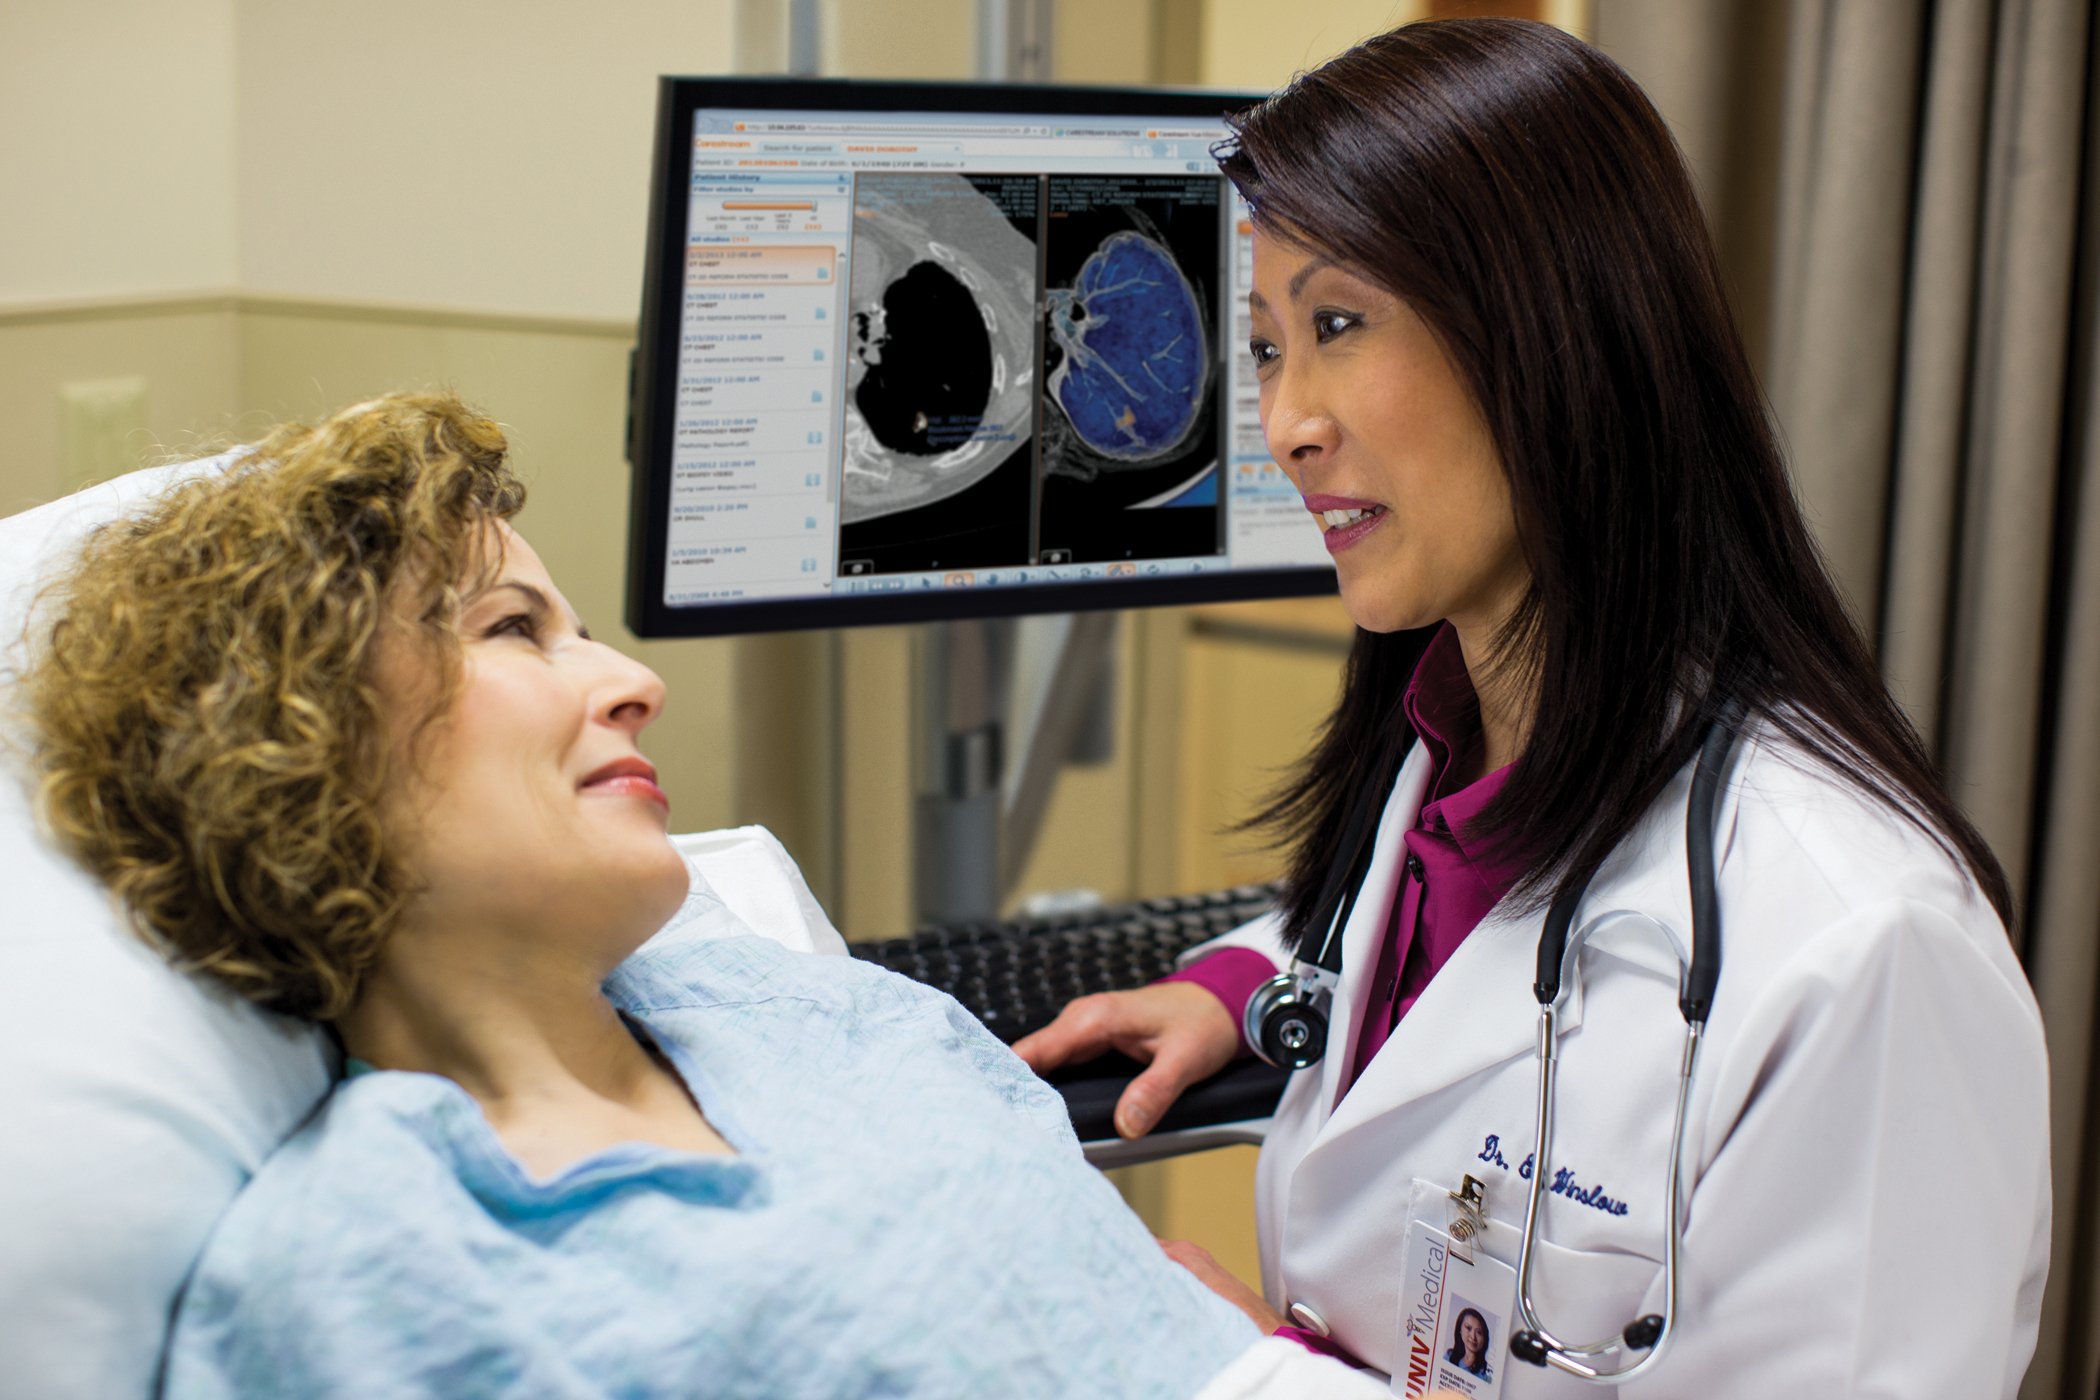 Carestream Health's Vue PACS supports multi-site reading of medical imaging exams and sharing of diagnostic information.(Photo: Business Wire)